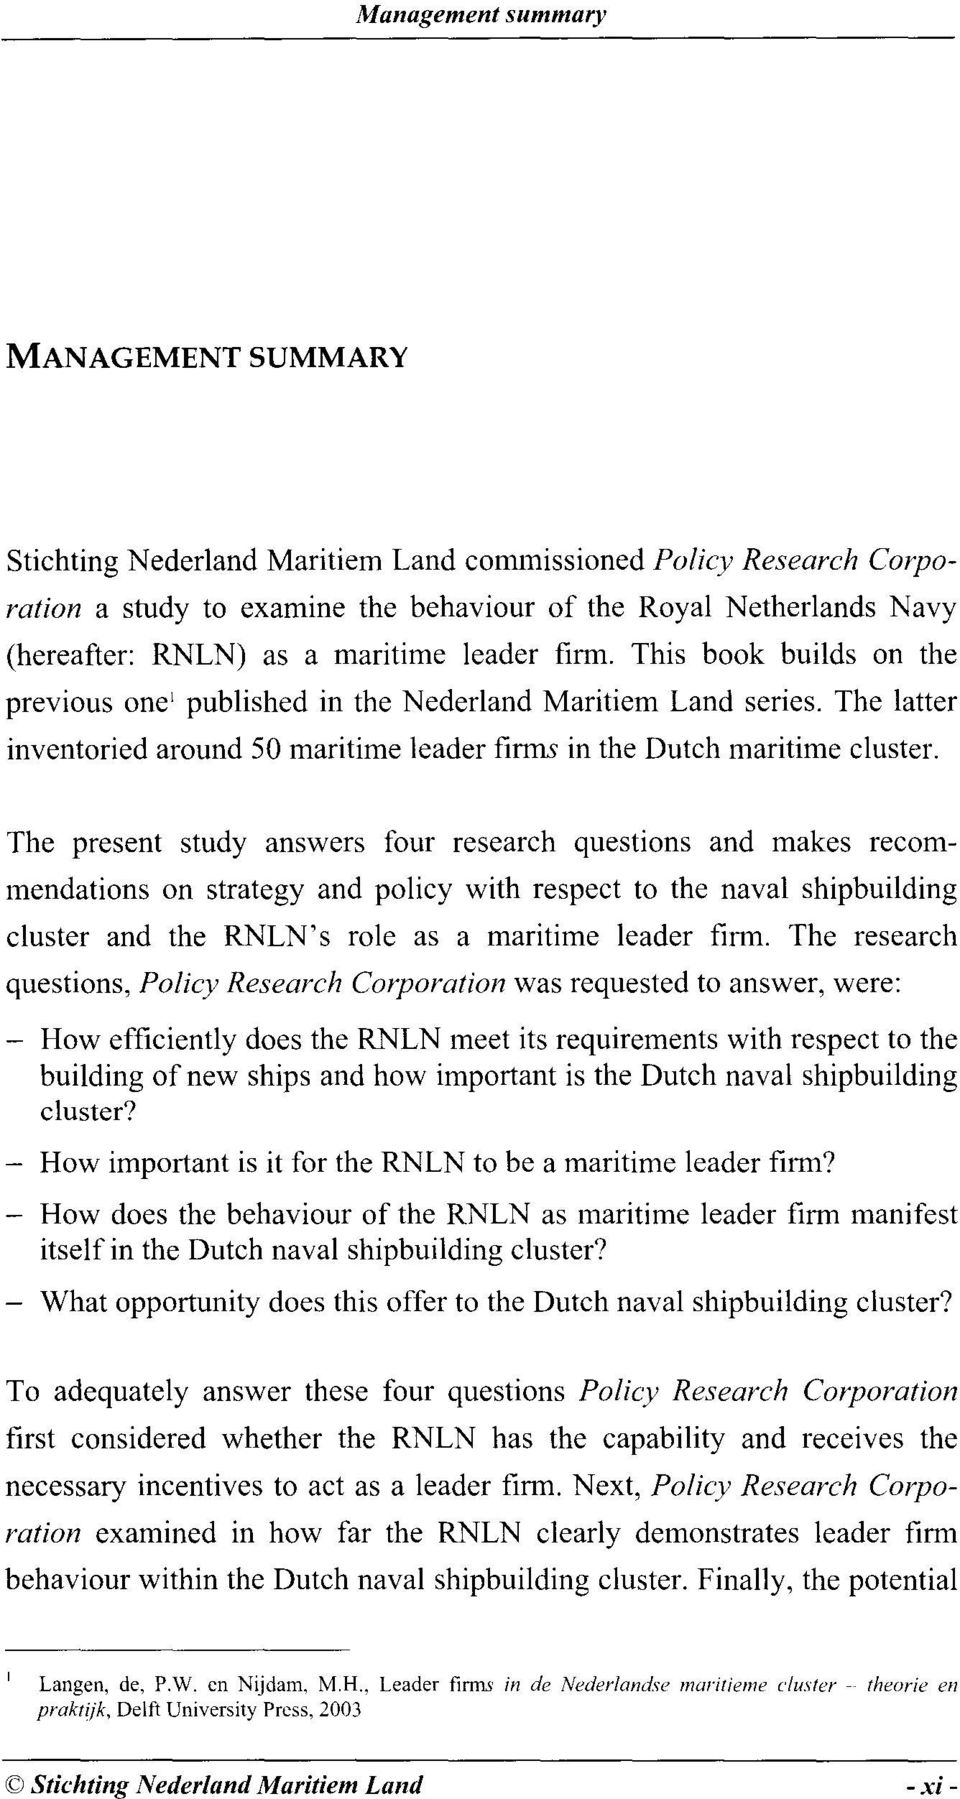 The present study answers four research questions and makes recommendations on strategy and policy with respect to the naval shipbuilding cluster and the RNLN's role as a maritime leader firm.